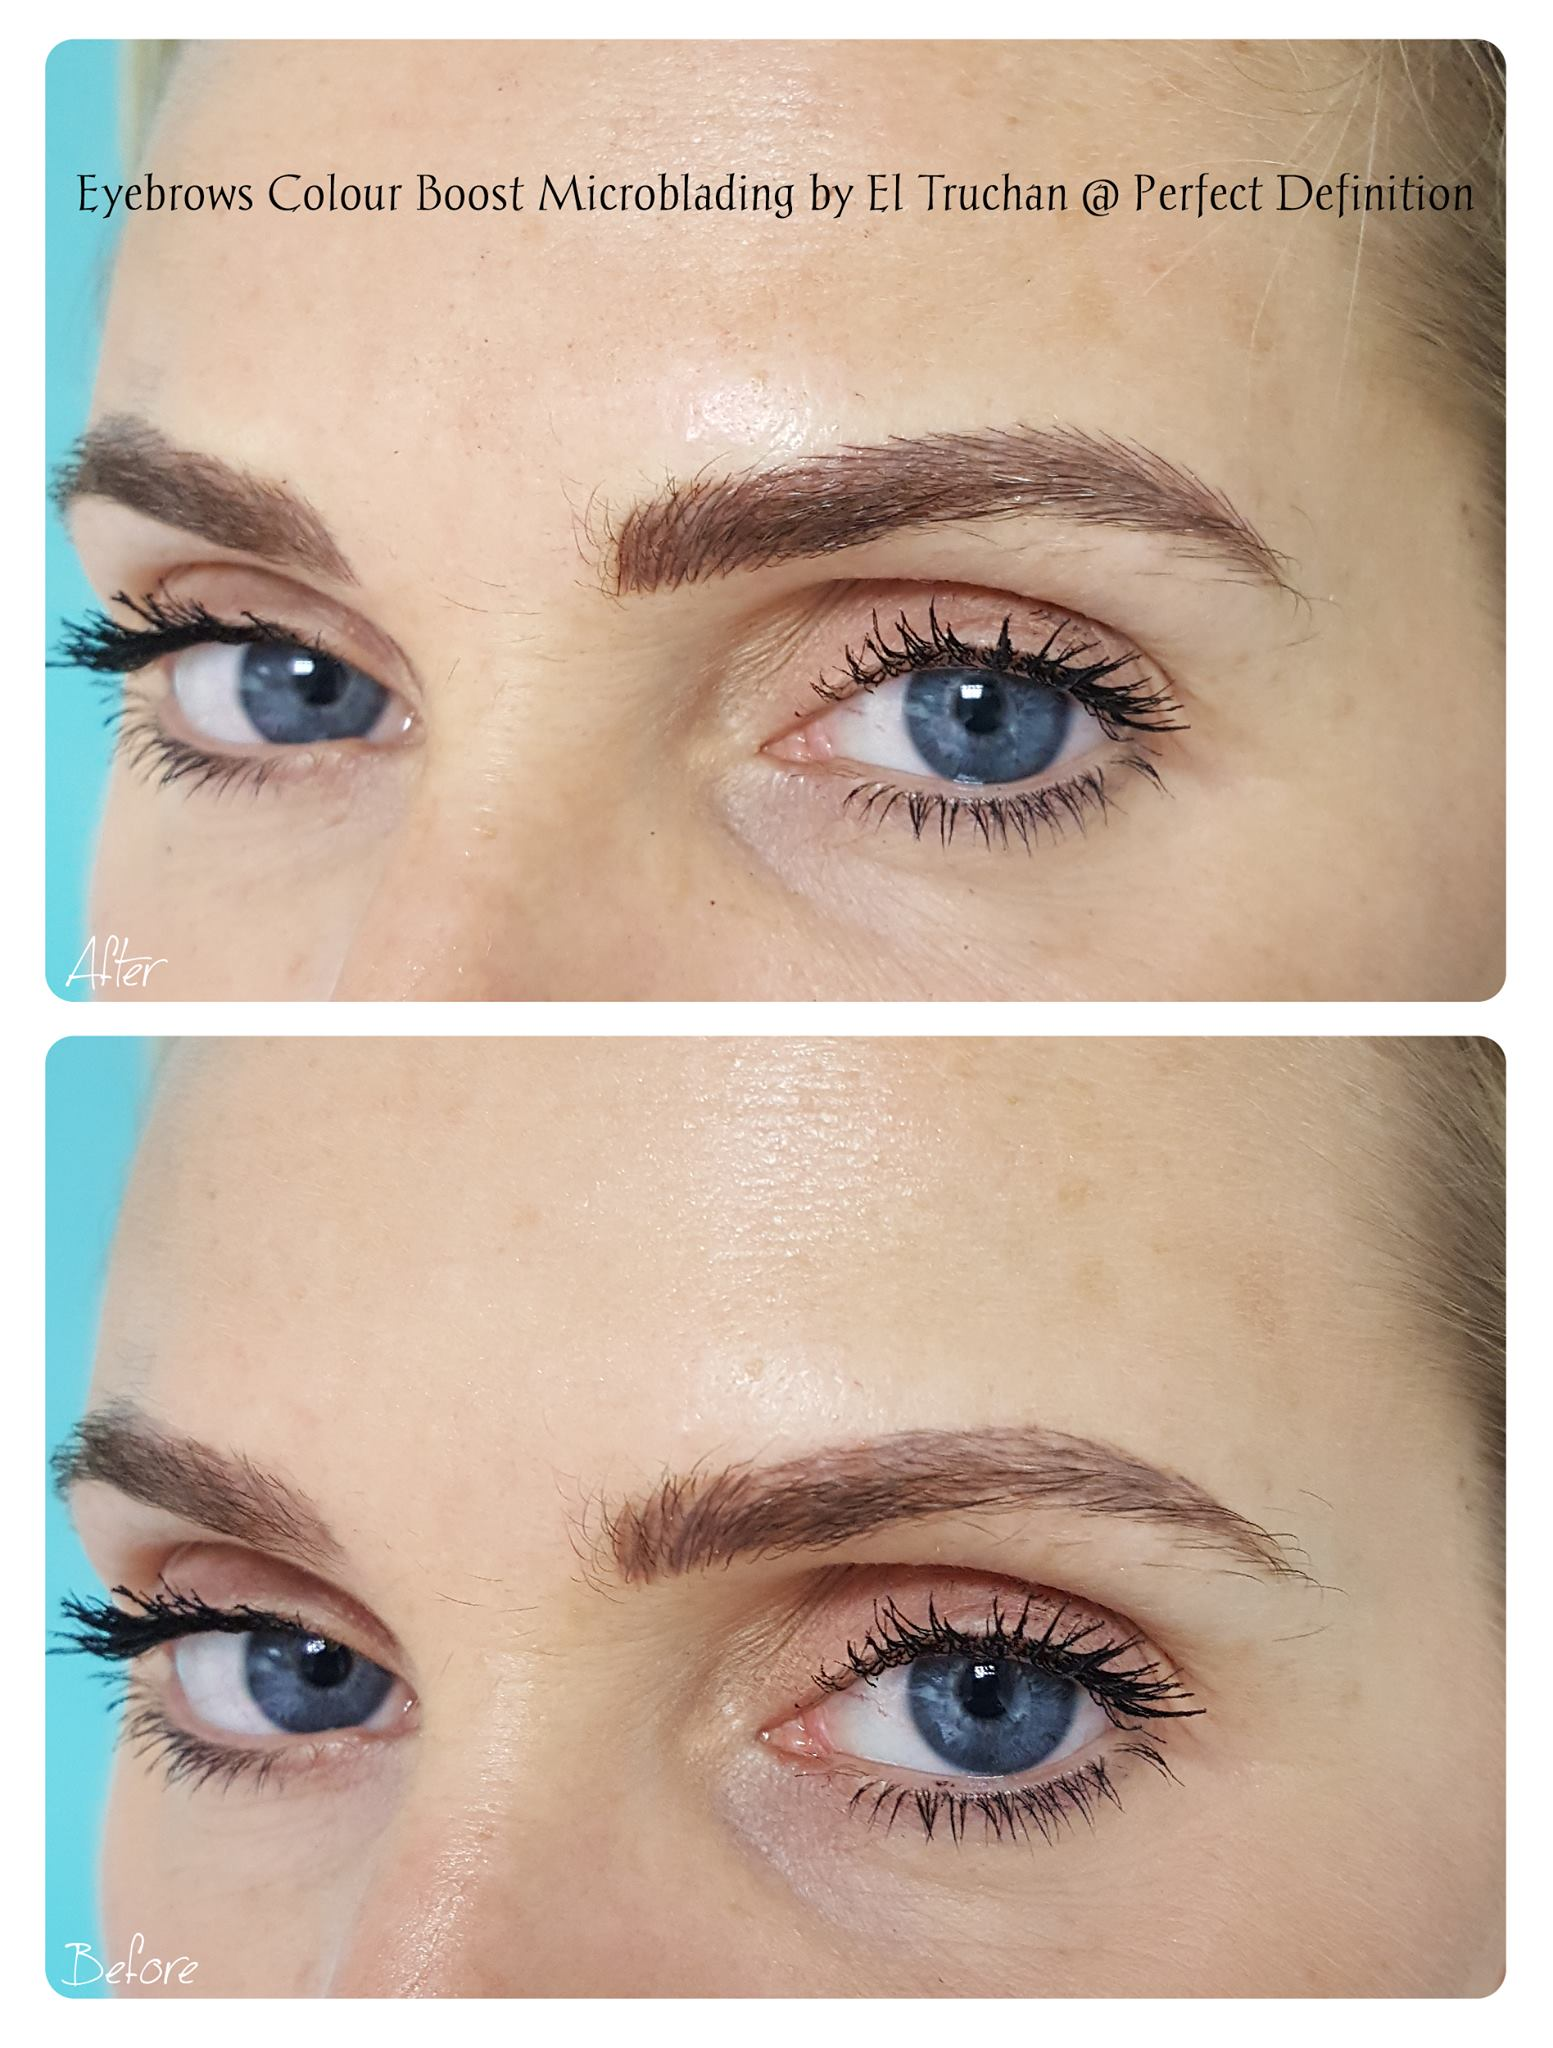 Eyebrows Colour Boost Microblading by El